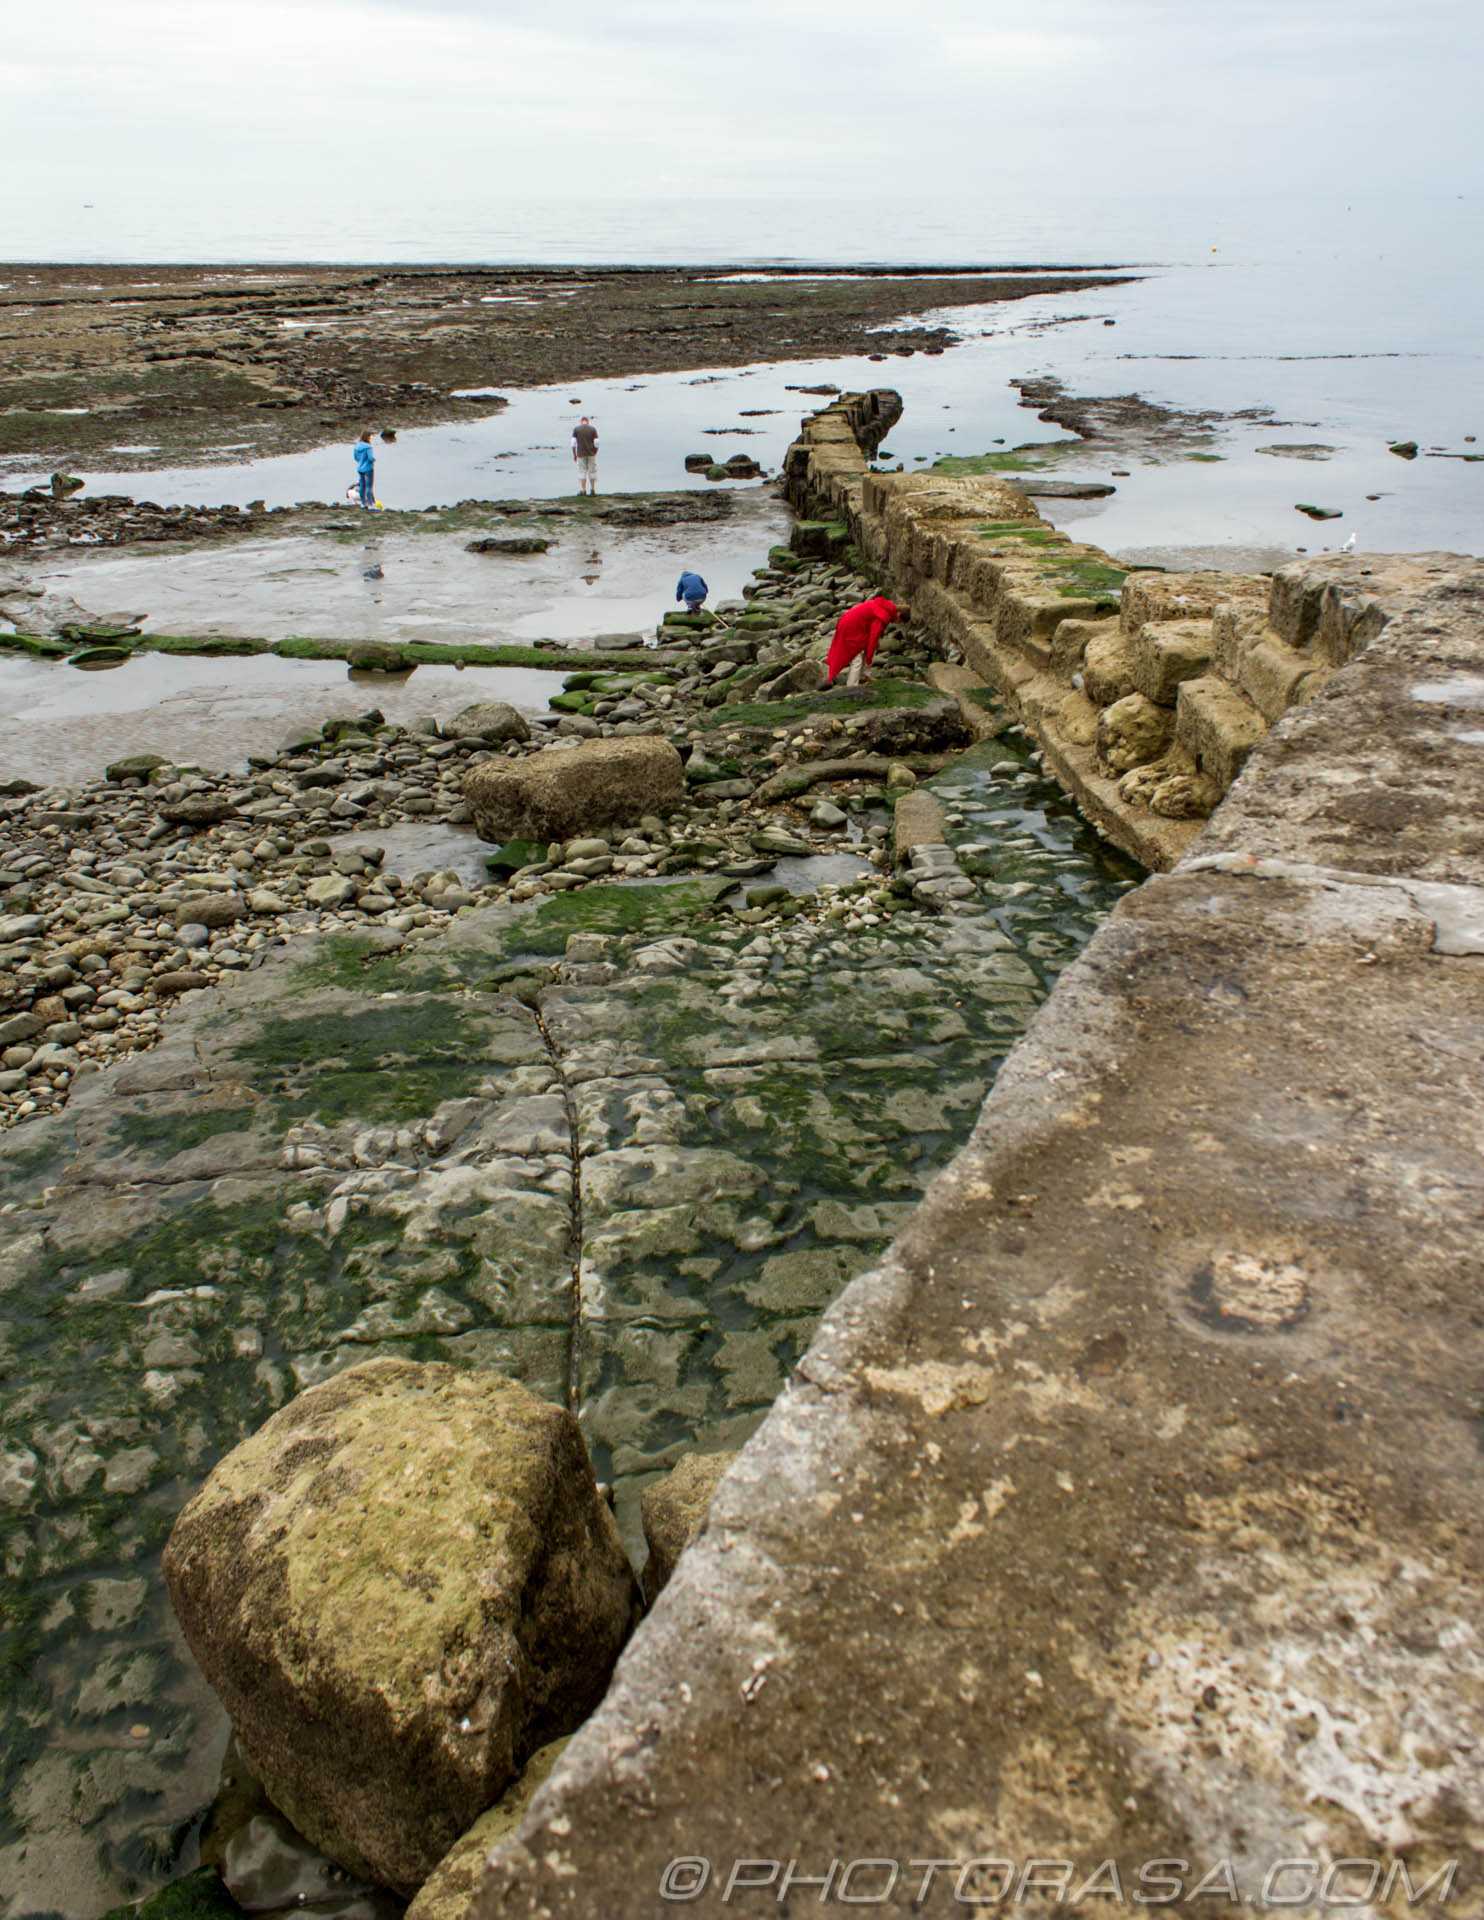 http://photorasa.com/jurassic-coast-lyme-regis/people-at-an-old-stone-breaker/